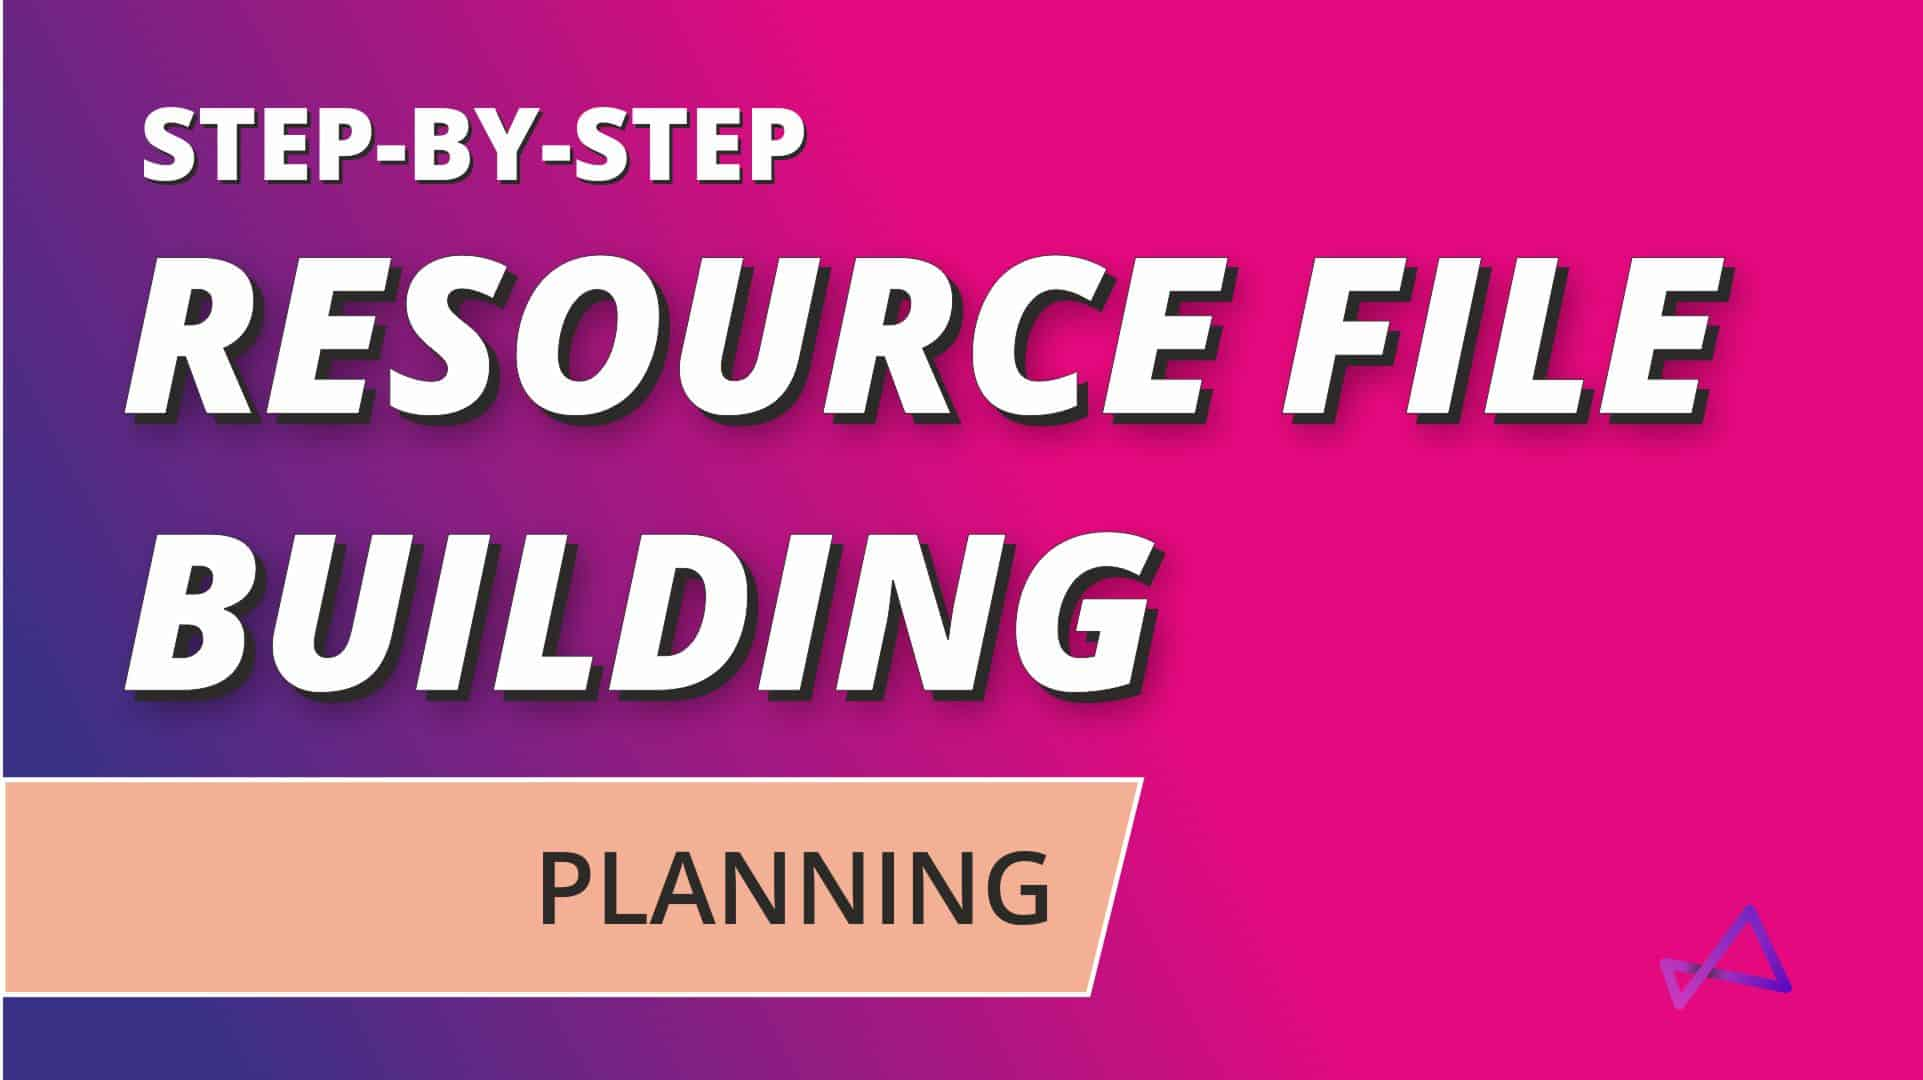 Resource File Building Planning Overview